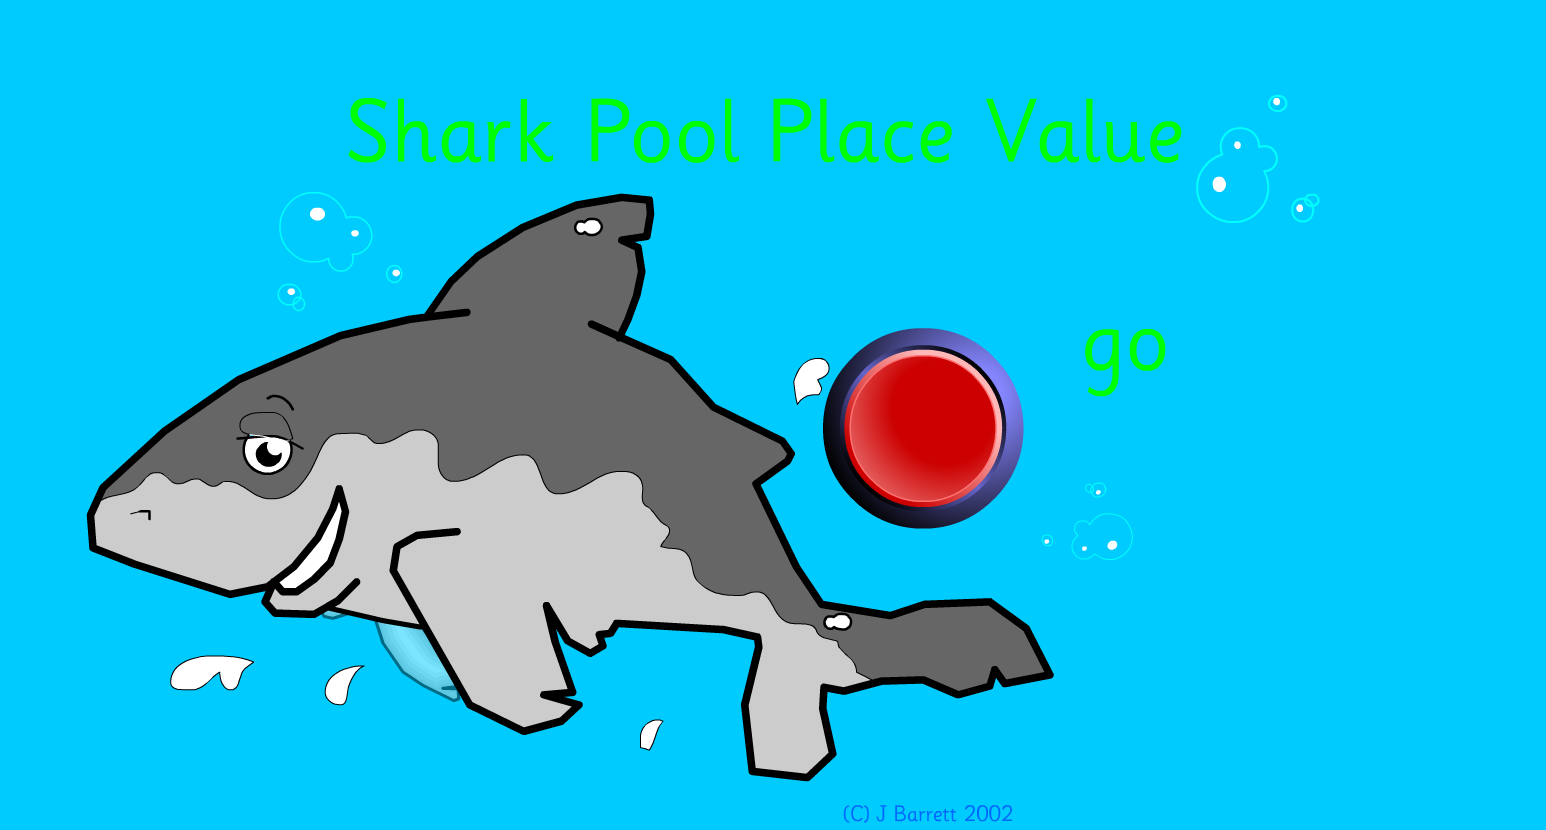 Http Www Ictgames Com Sharknumbers Html A Shark Place Value Quizzer Everytime You Give A Wrong Answer The Sha Math Interactive Tens And Units Place Values [ 830 x 1546 Pixel ]